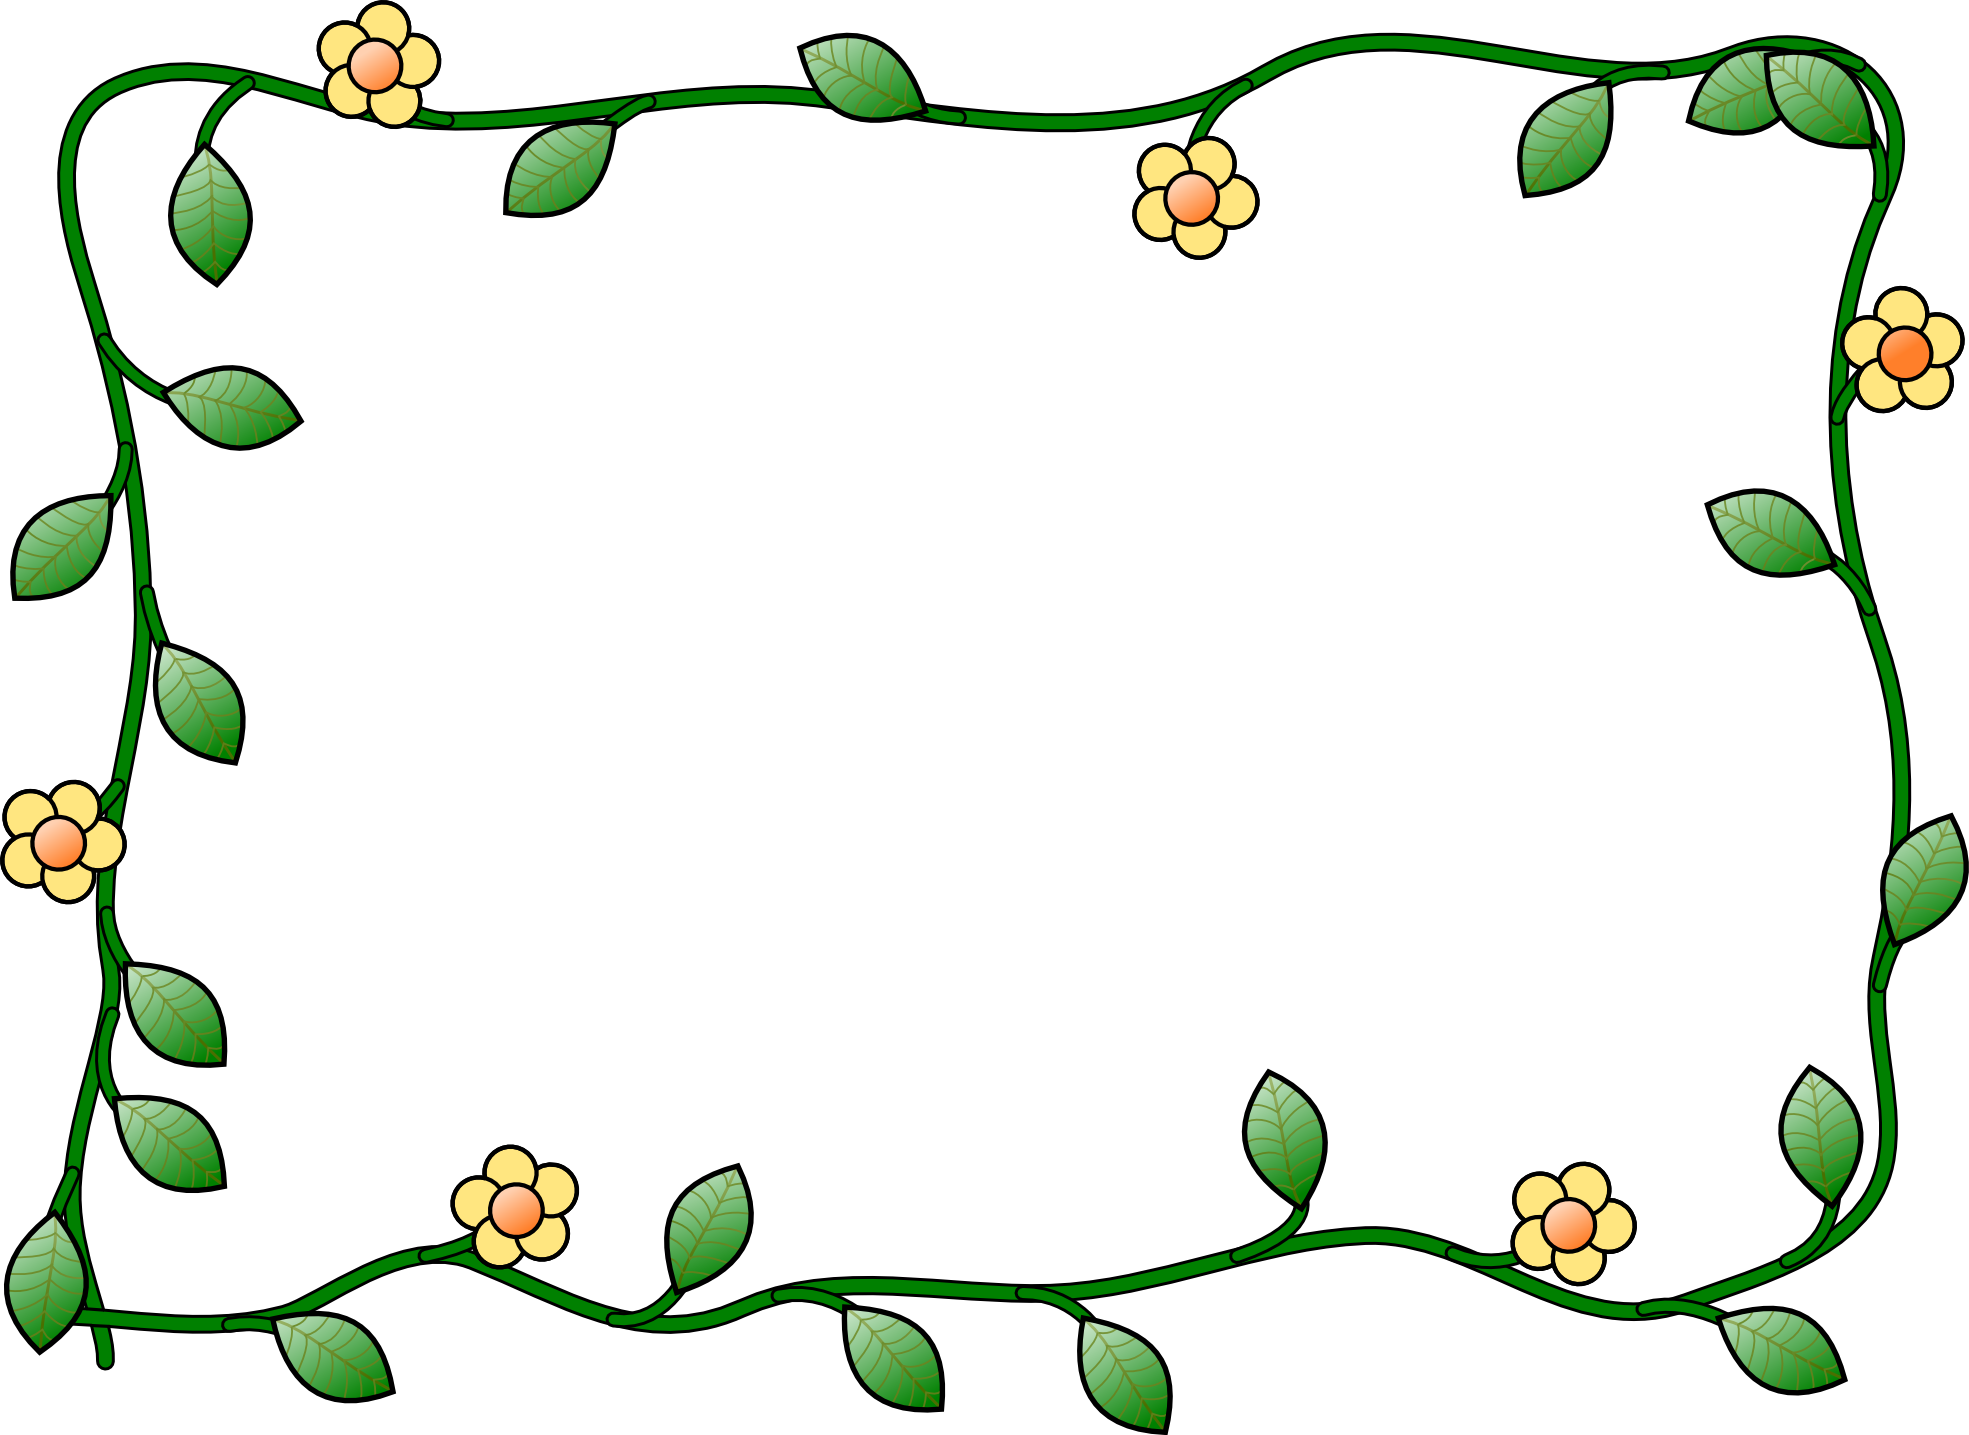 Daisy clipart frame. Mothers day cie flower